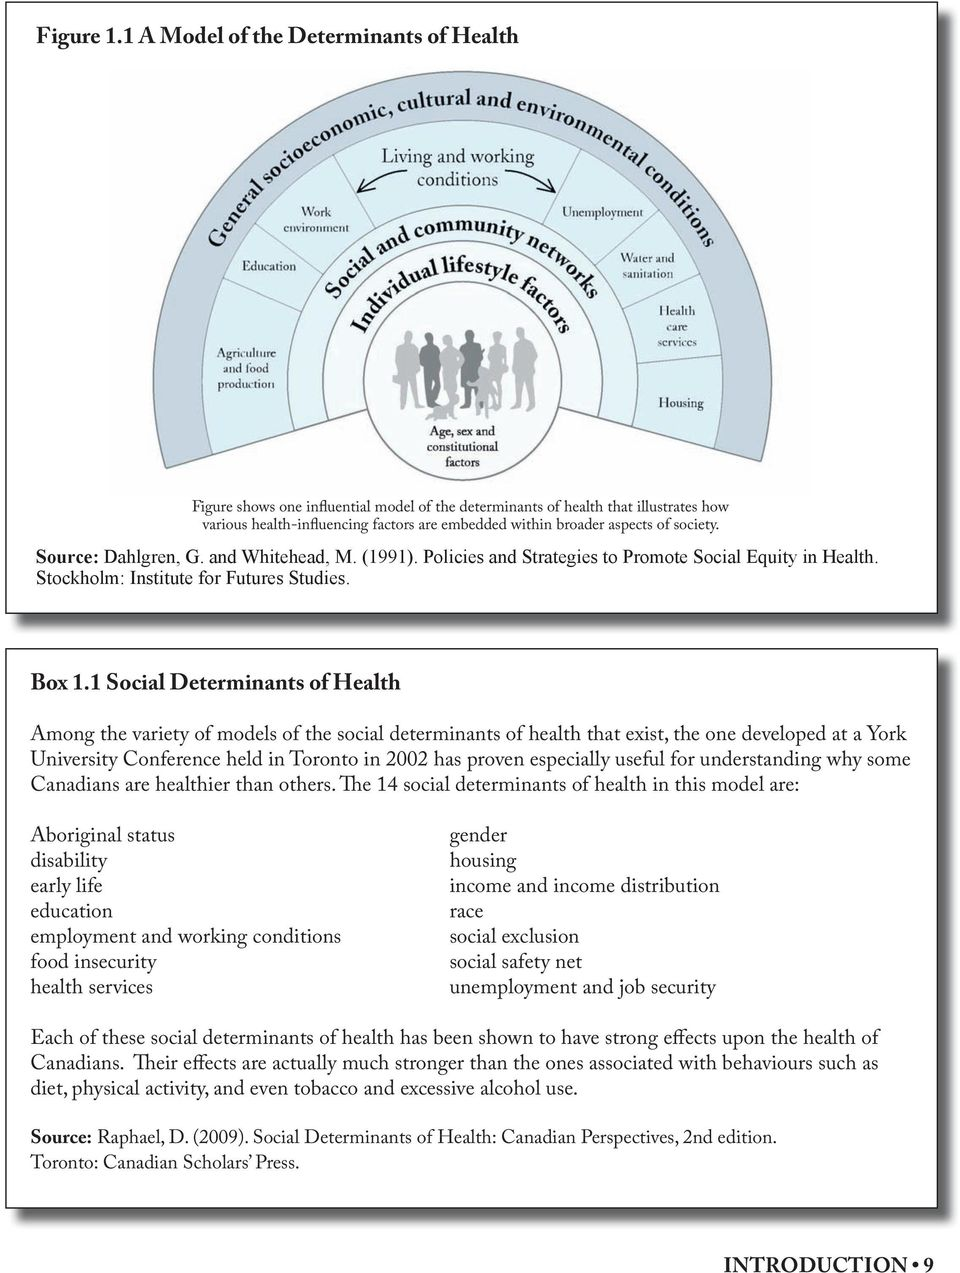 society. Source: Dahlgren, G. and Whitehead, M. (1991). Policies and Strategies to Promote Social Equity in Health. Stockholm: Institute for Futures Studies. Box 1.